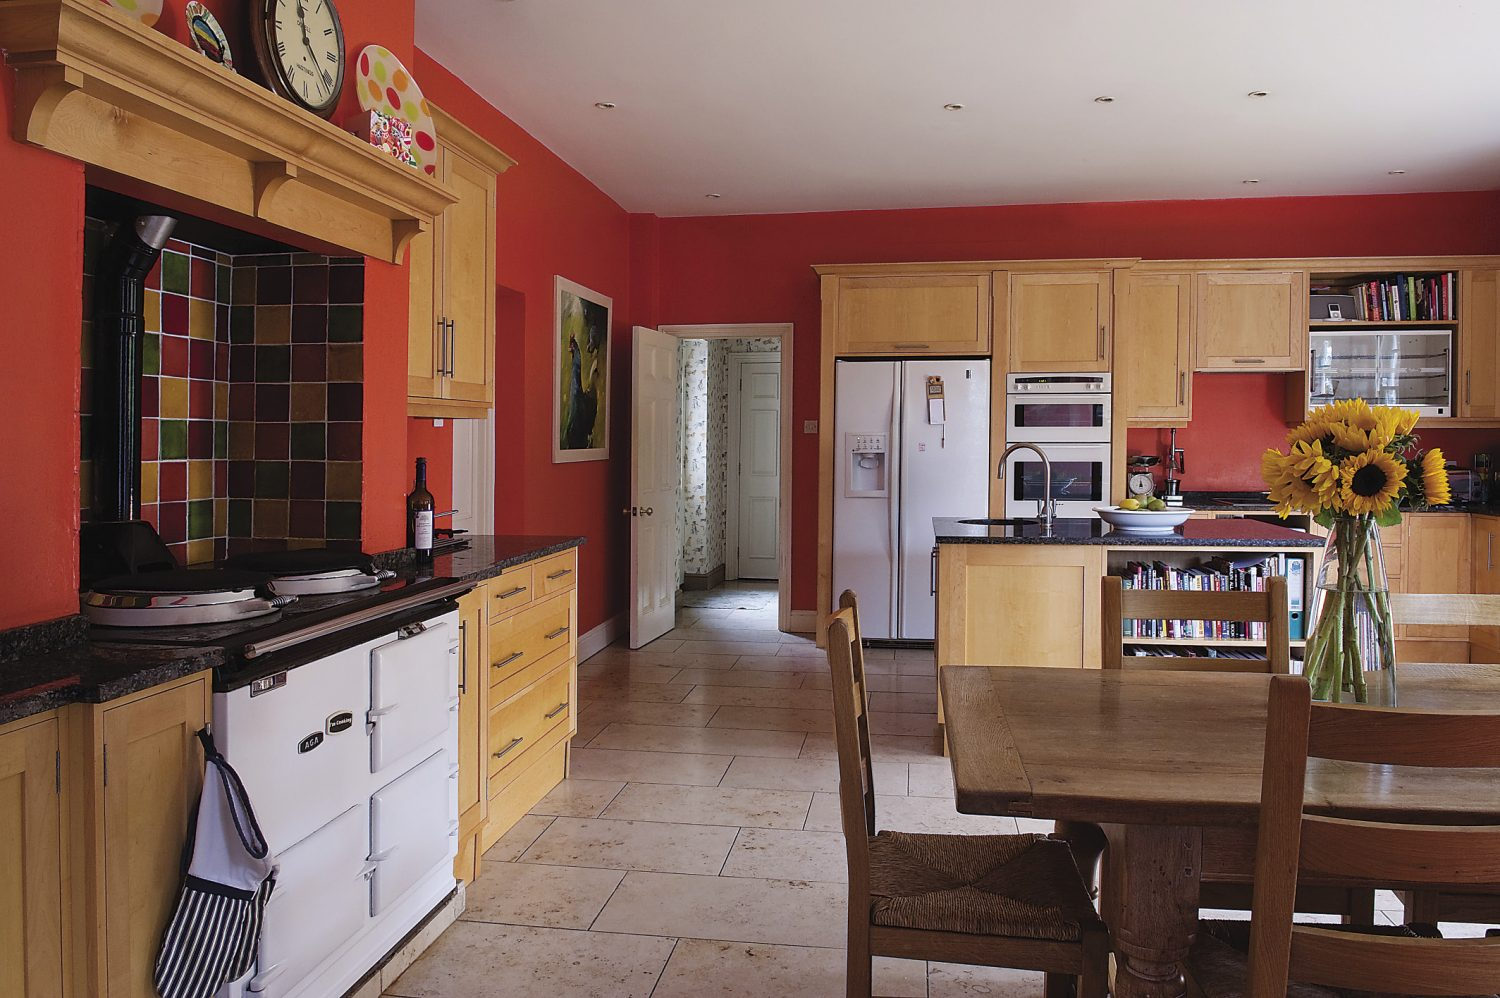 The substantial kitchen, complete with Belling warm cupboard (above, to the far right of the image), the number one item on Sophie and Nick's wedding list